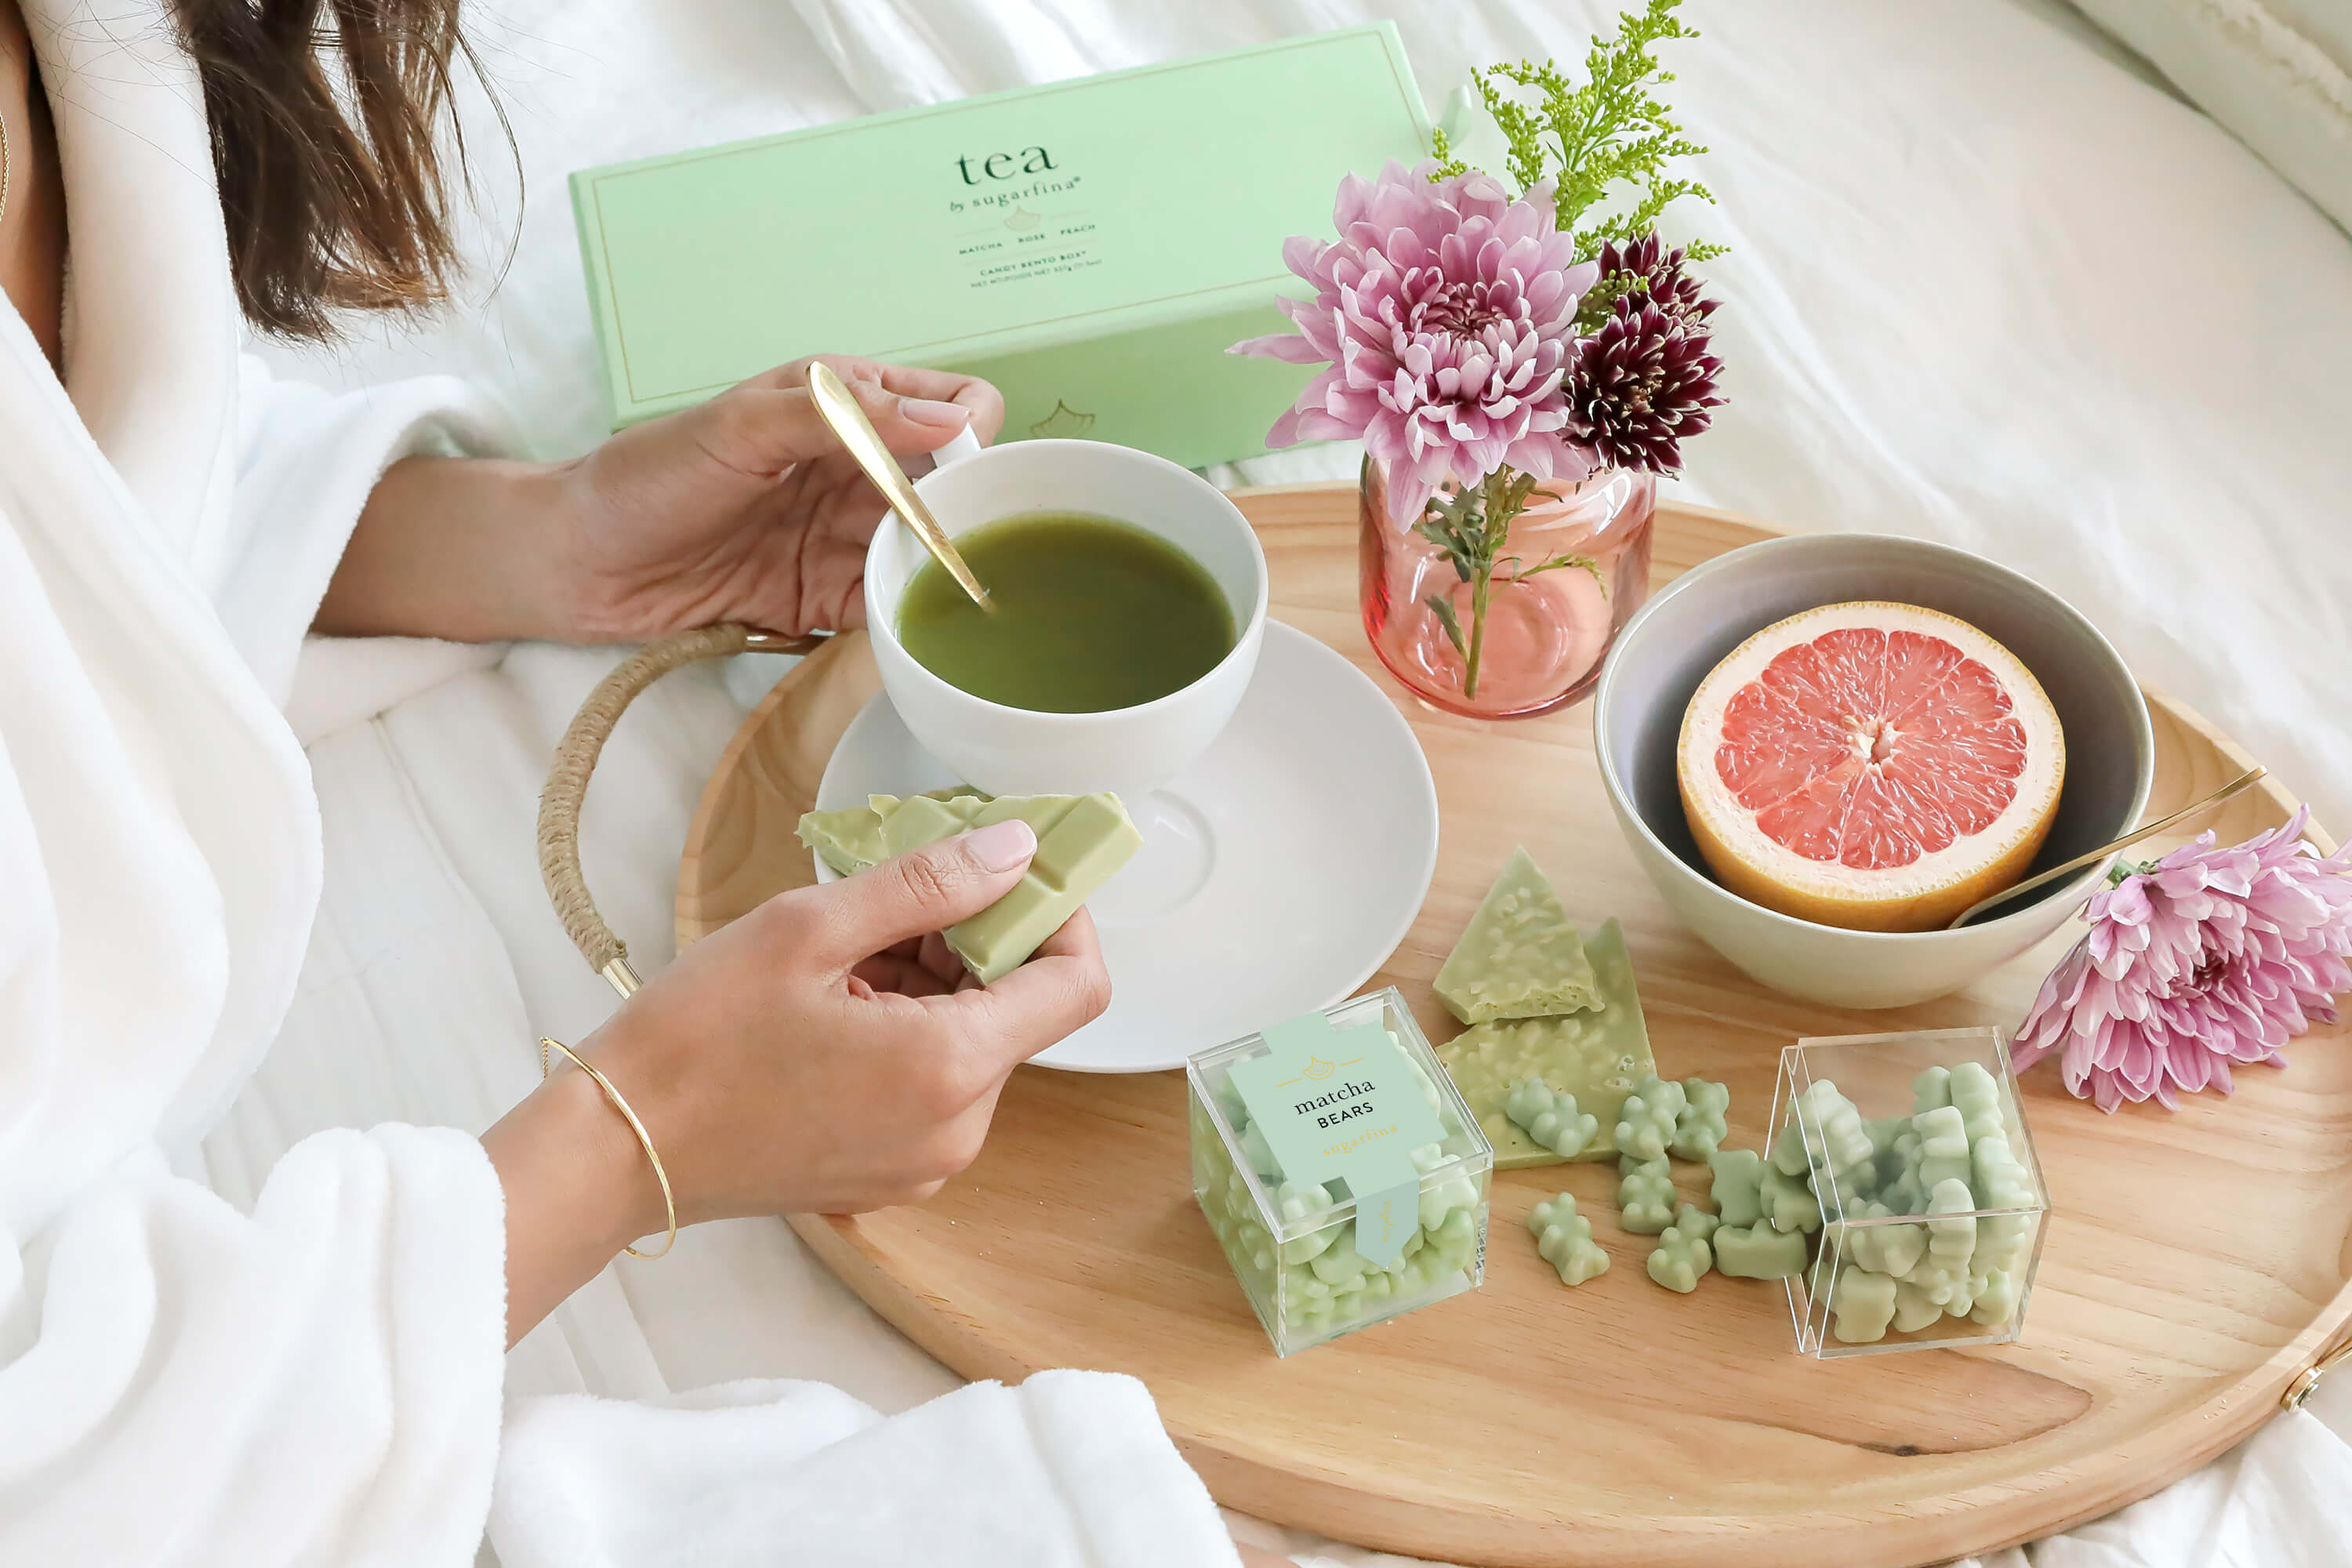 Pamper Mom the Sugarfina Way this Mother's Day